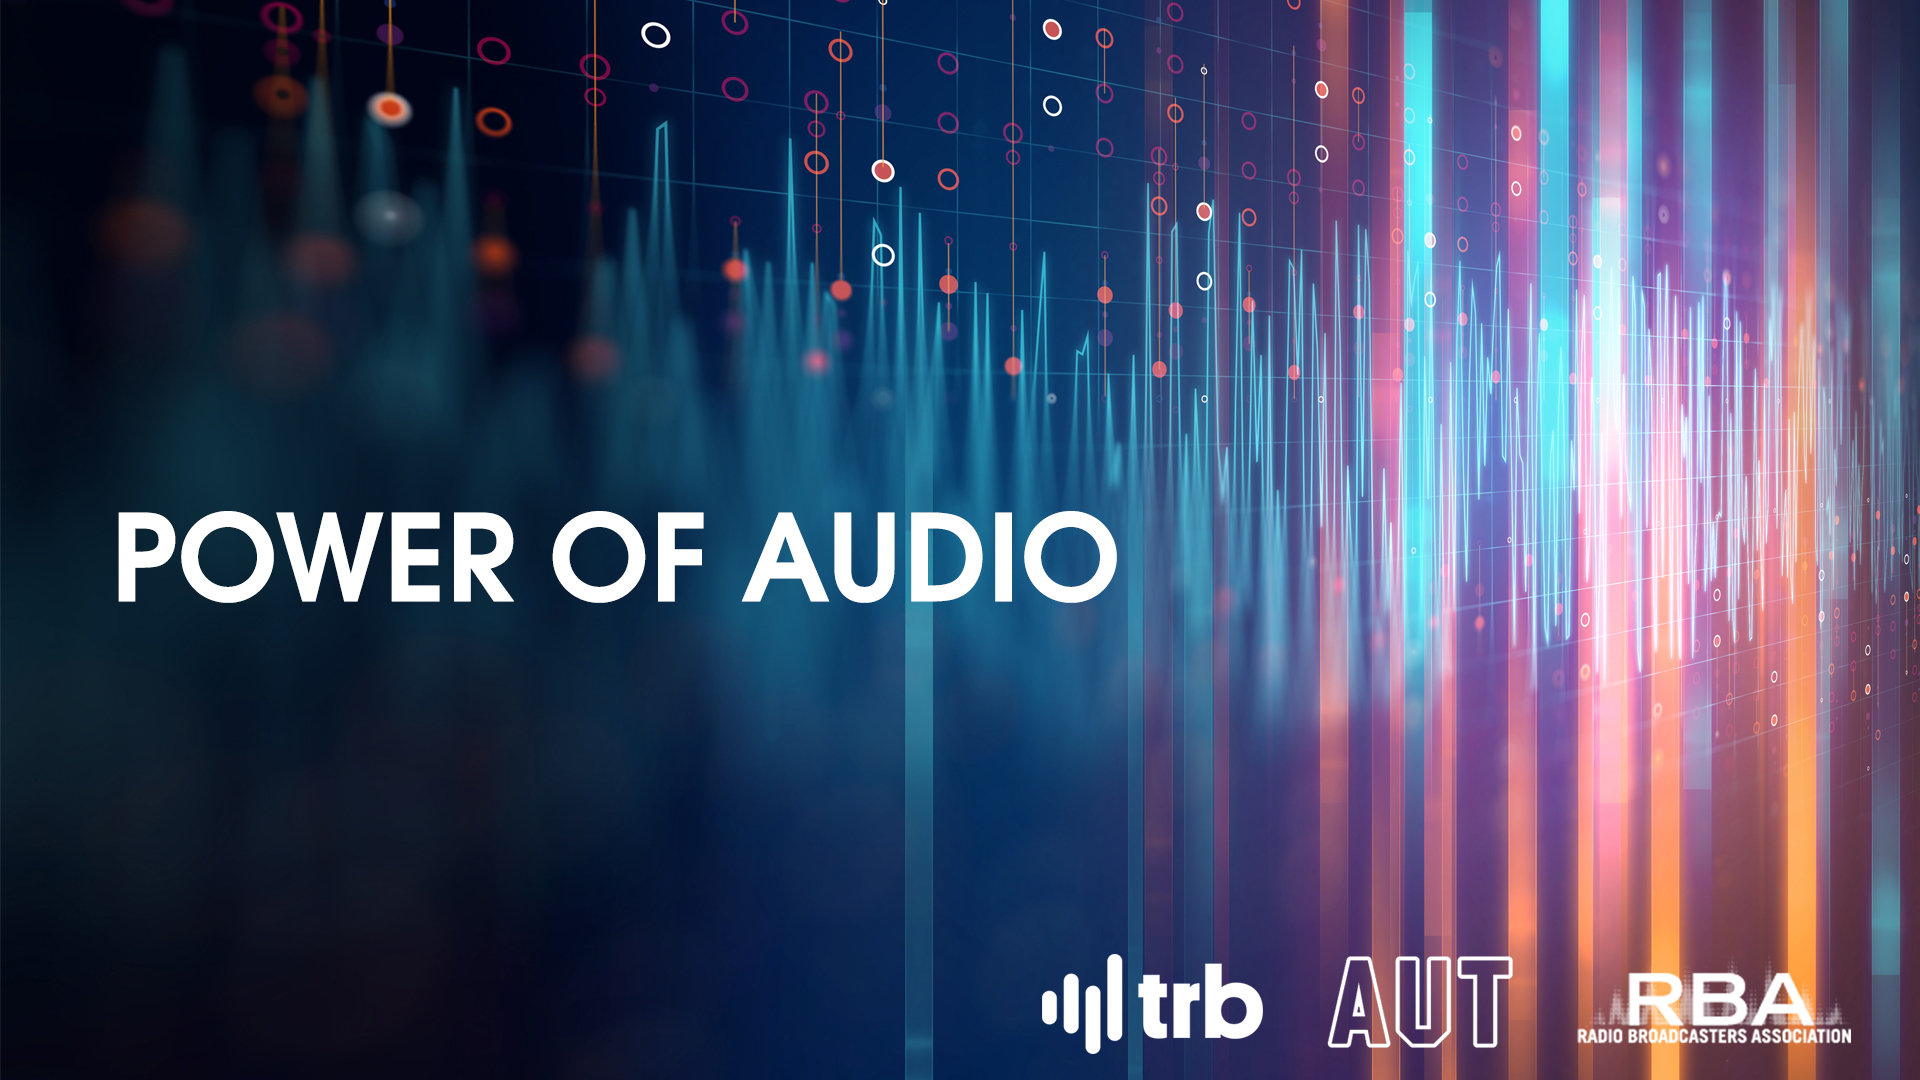 Power of Audio Conference